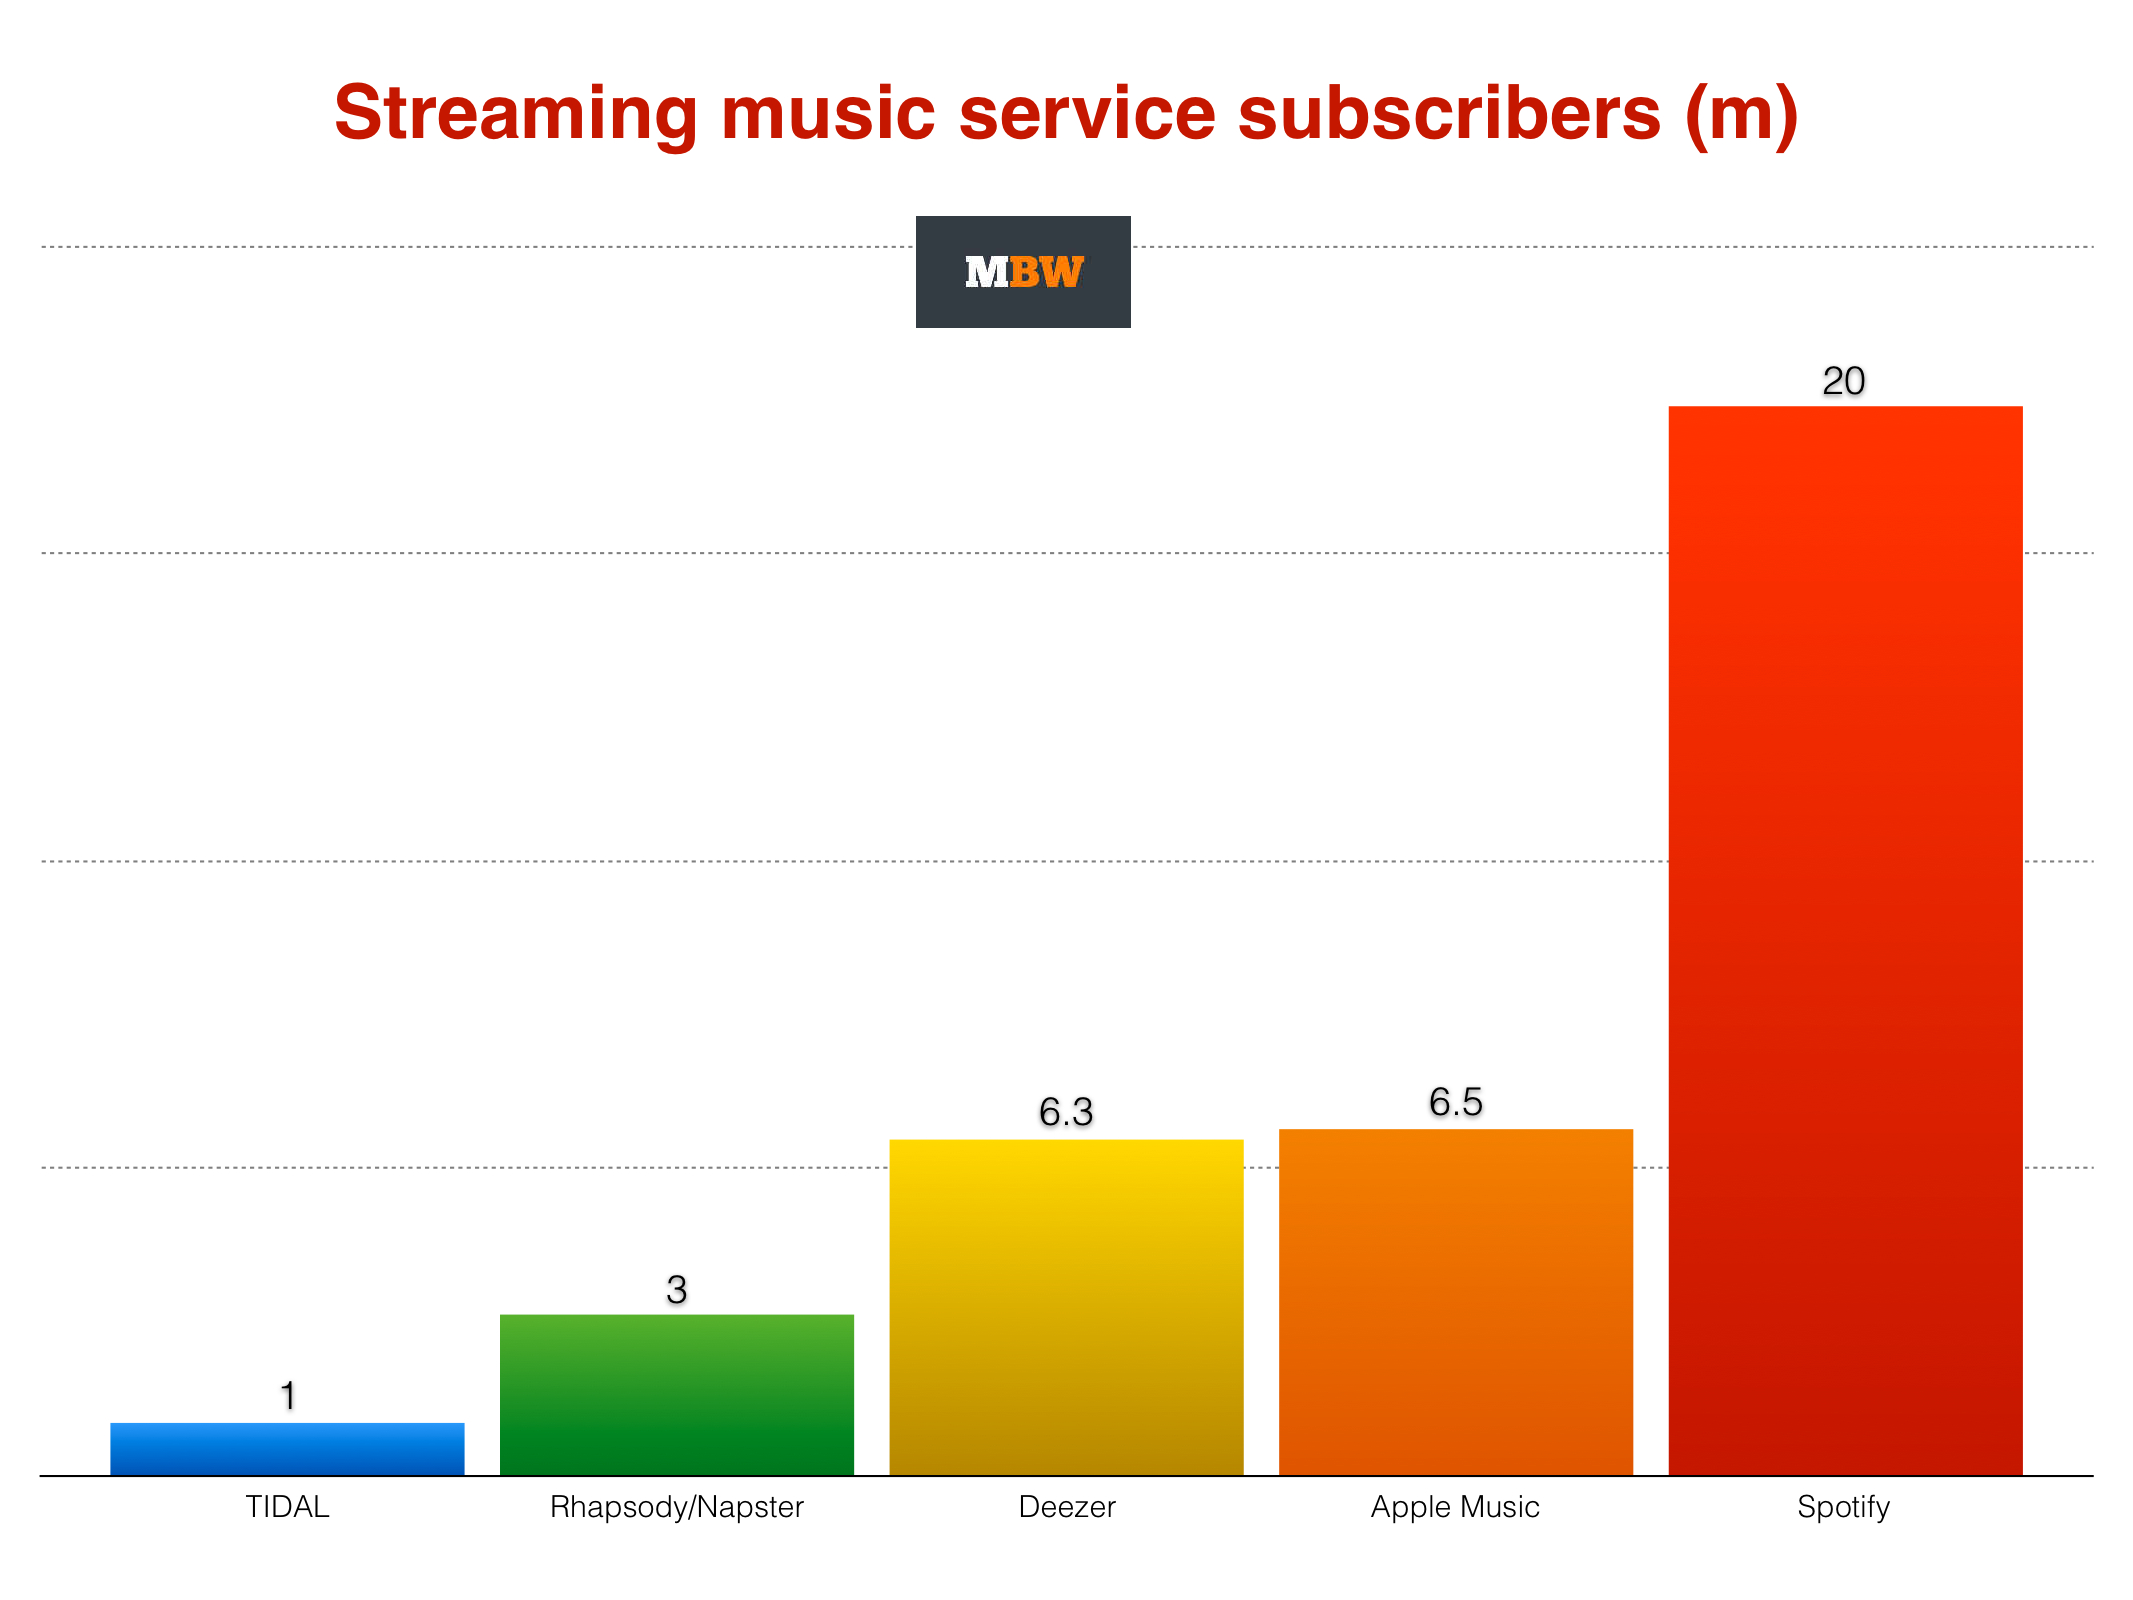 With 6 5m paying subs, Apple Music has kept 60% of initial